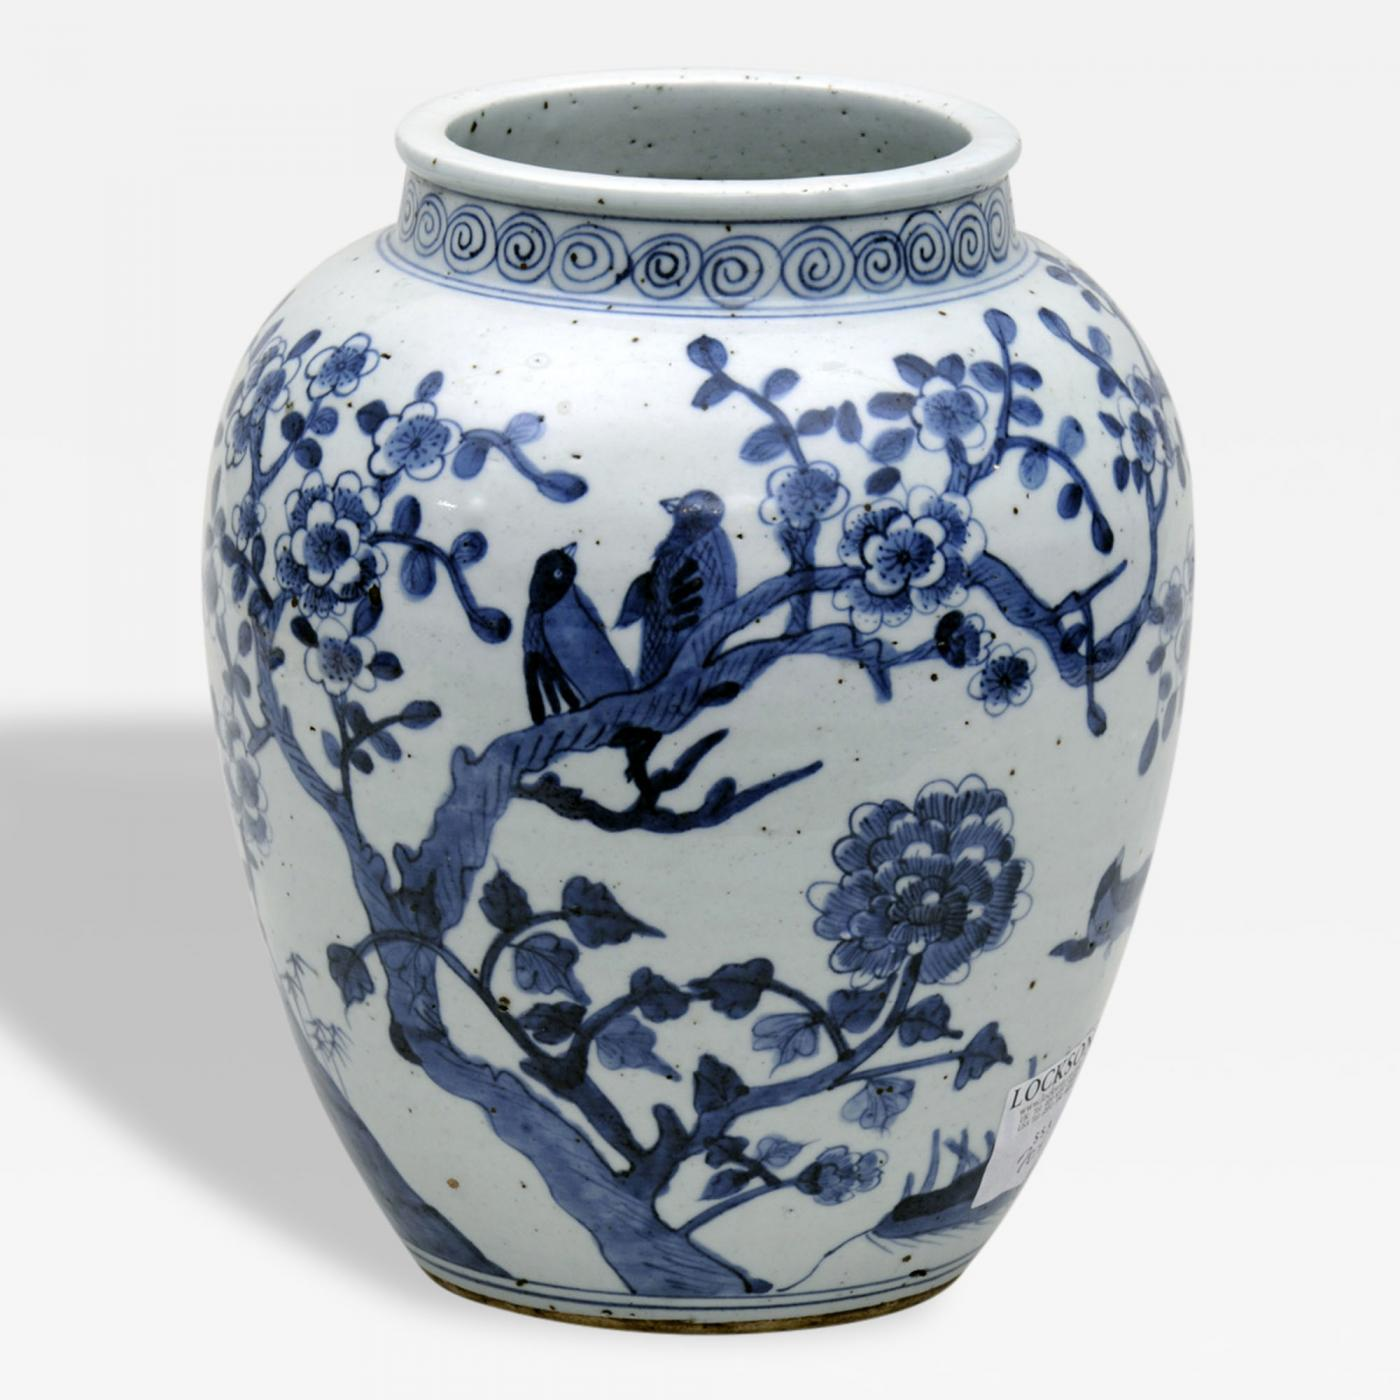 Chinese shunzhi blue and white vase 1644 1661 listings decorative arts objects vases jars urns chinese shunzhi blue and white reviewsmspy